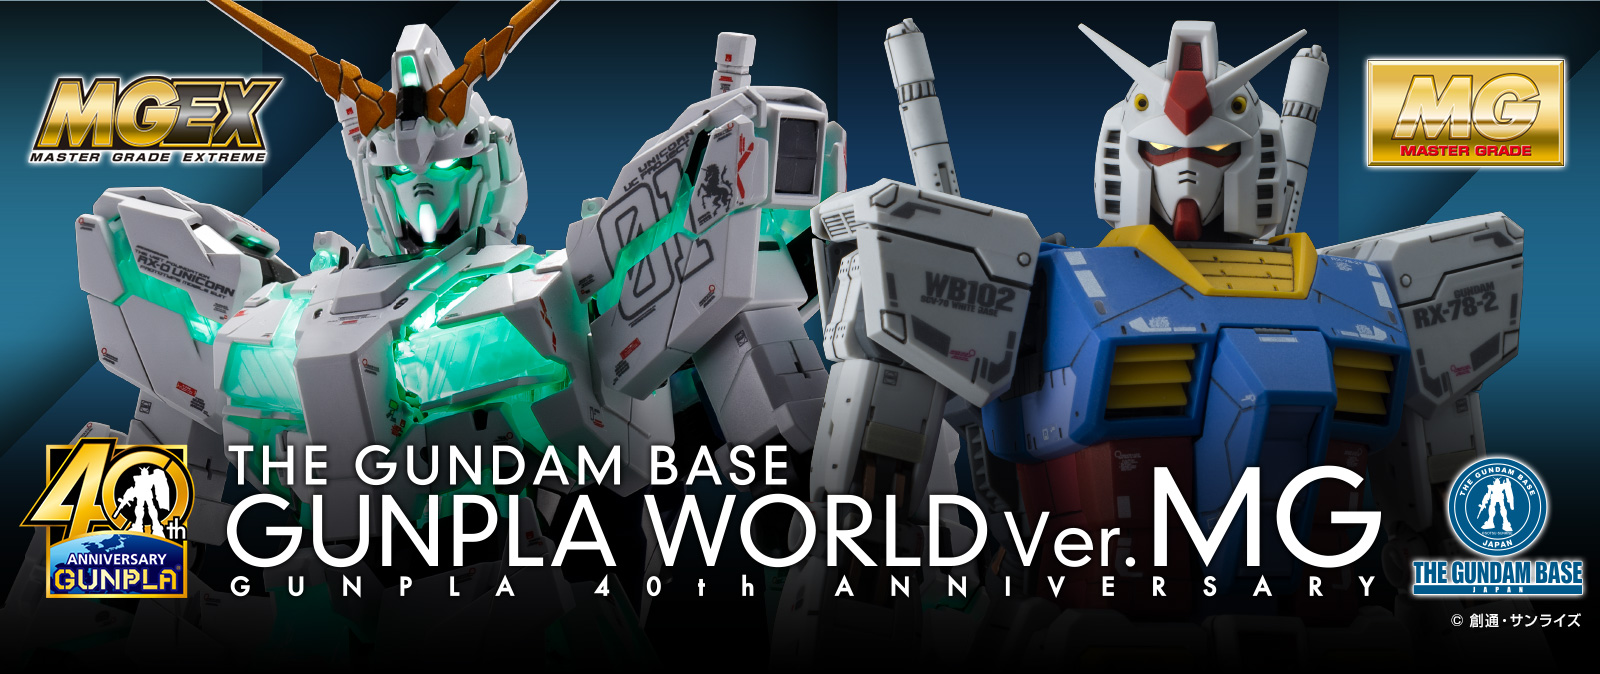 THE GUNDAM BASE GUNPLA WORLD Ver.MG GUNPLA 40th ANNIVERSARY